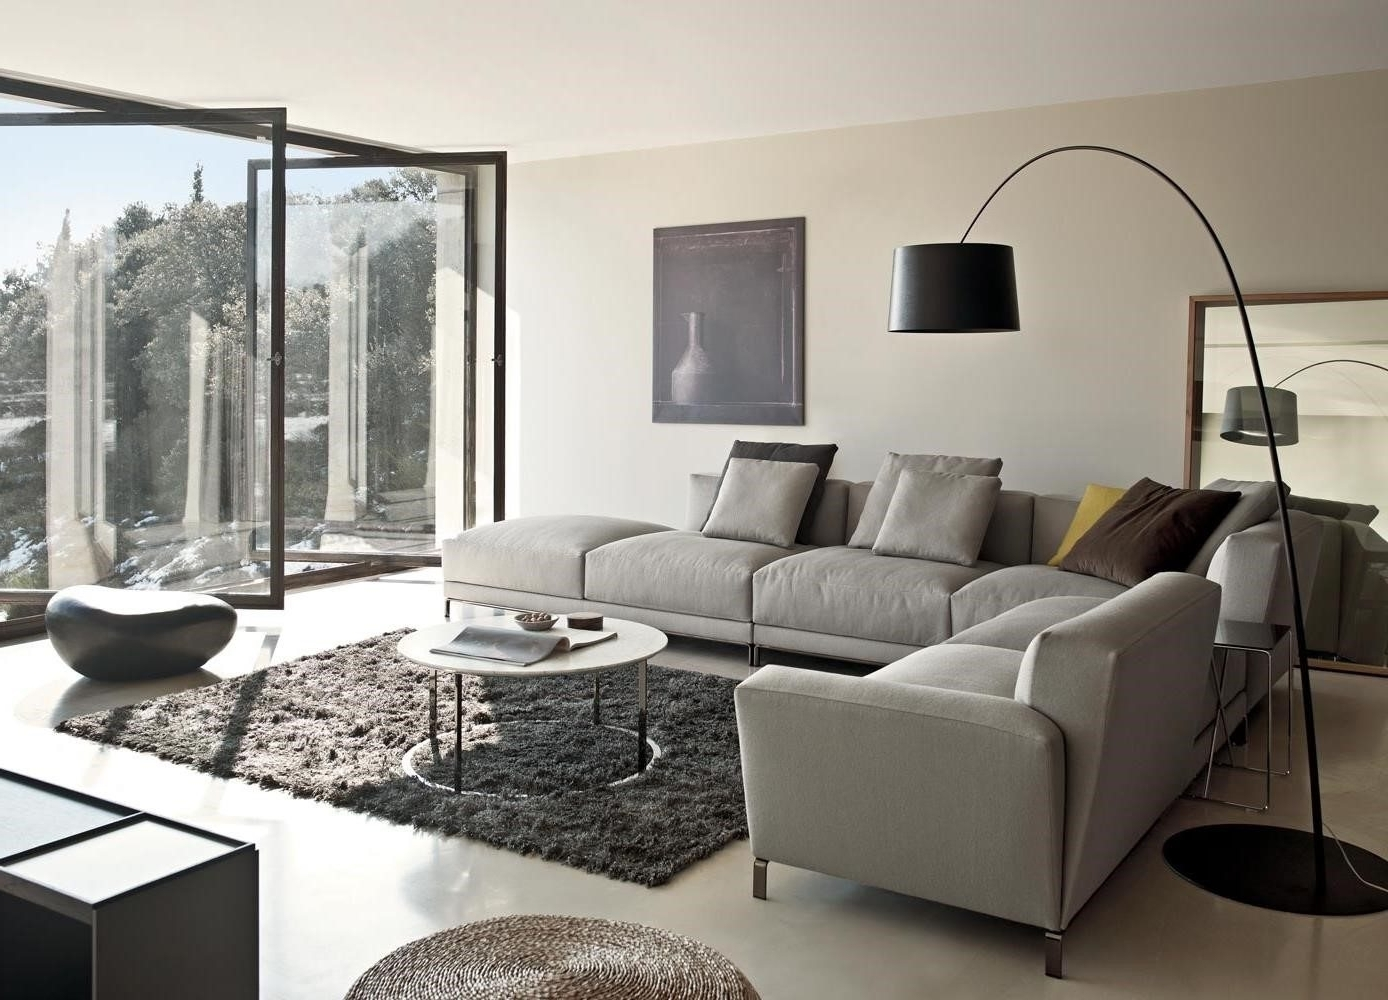 Preferred Apartment Sectional Sofas With Chaise Regarding Sectional Sofa Design: Apartment Sectional Sofa Chaise Leather (View 18 of 20)